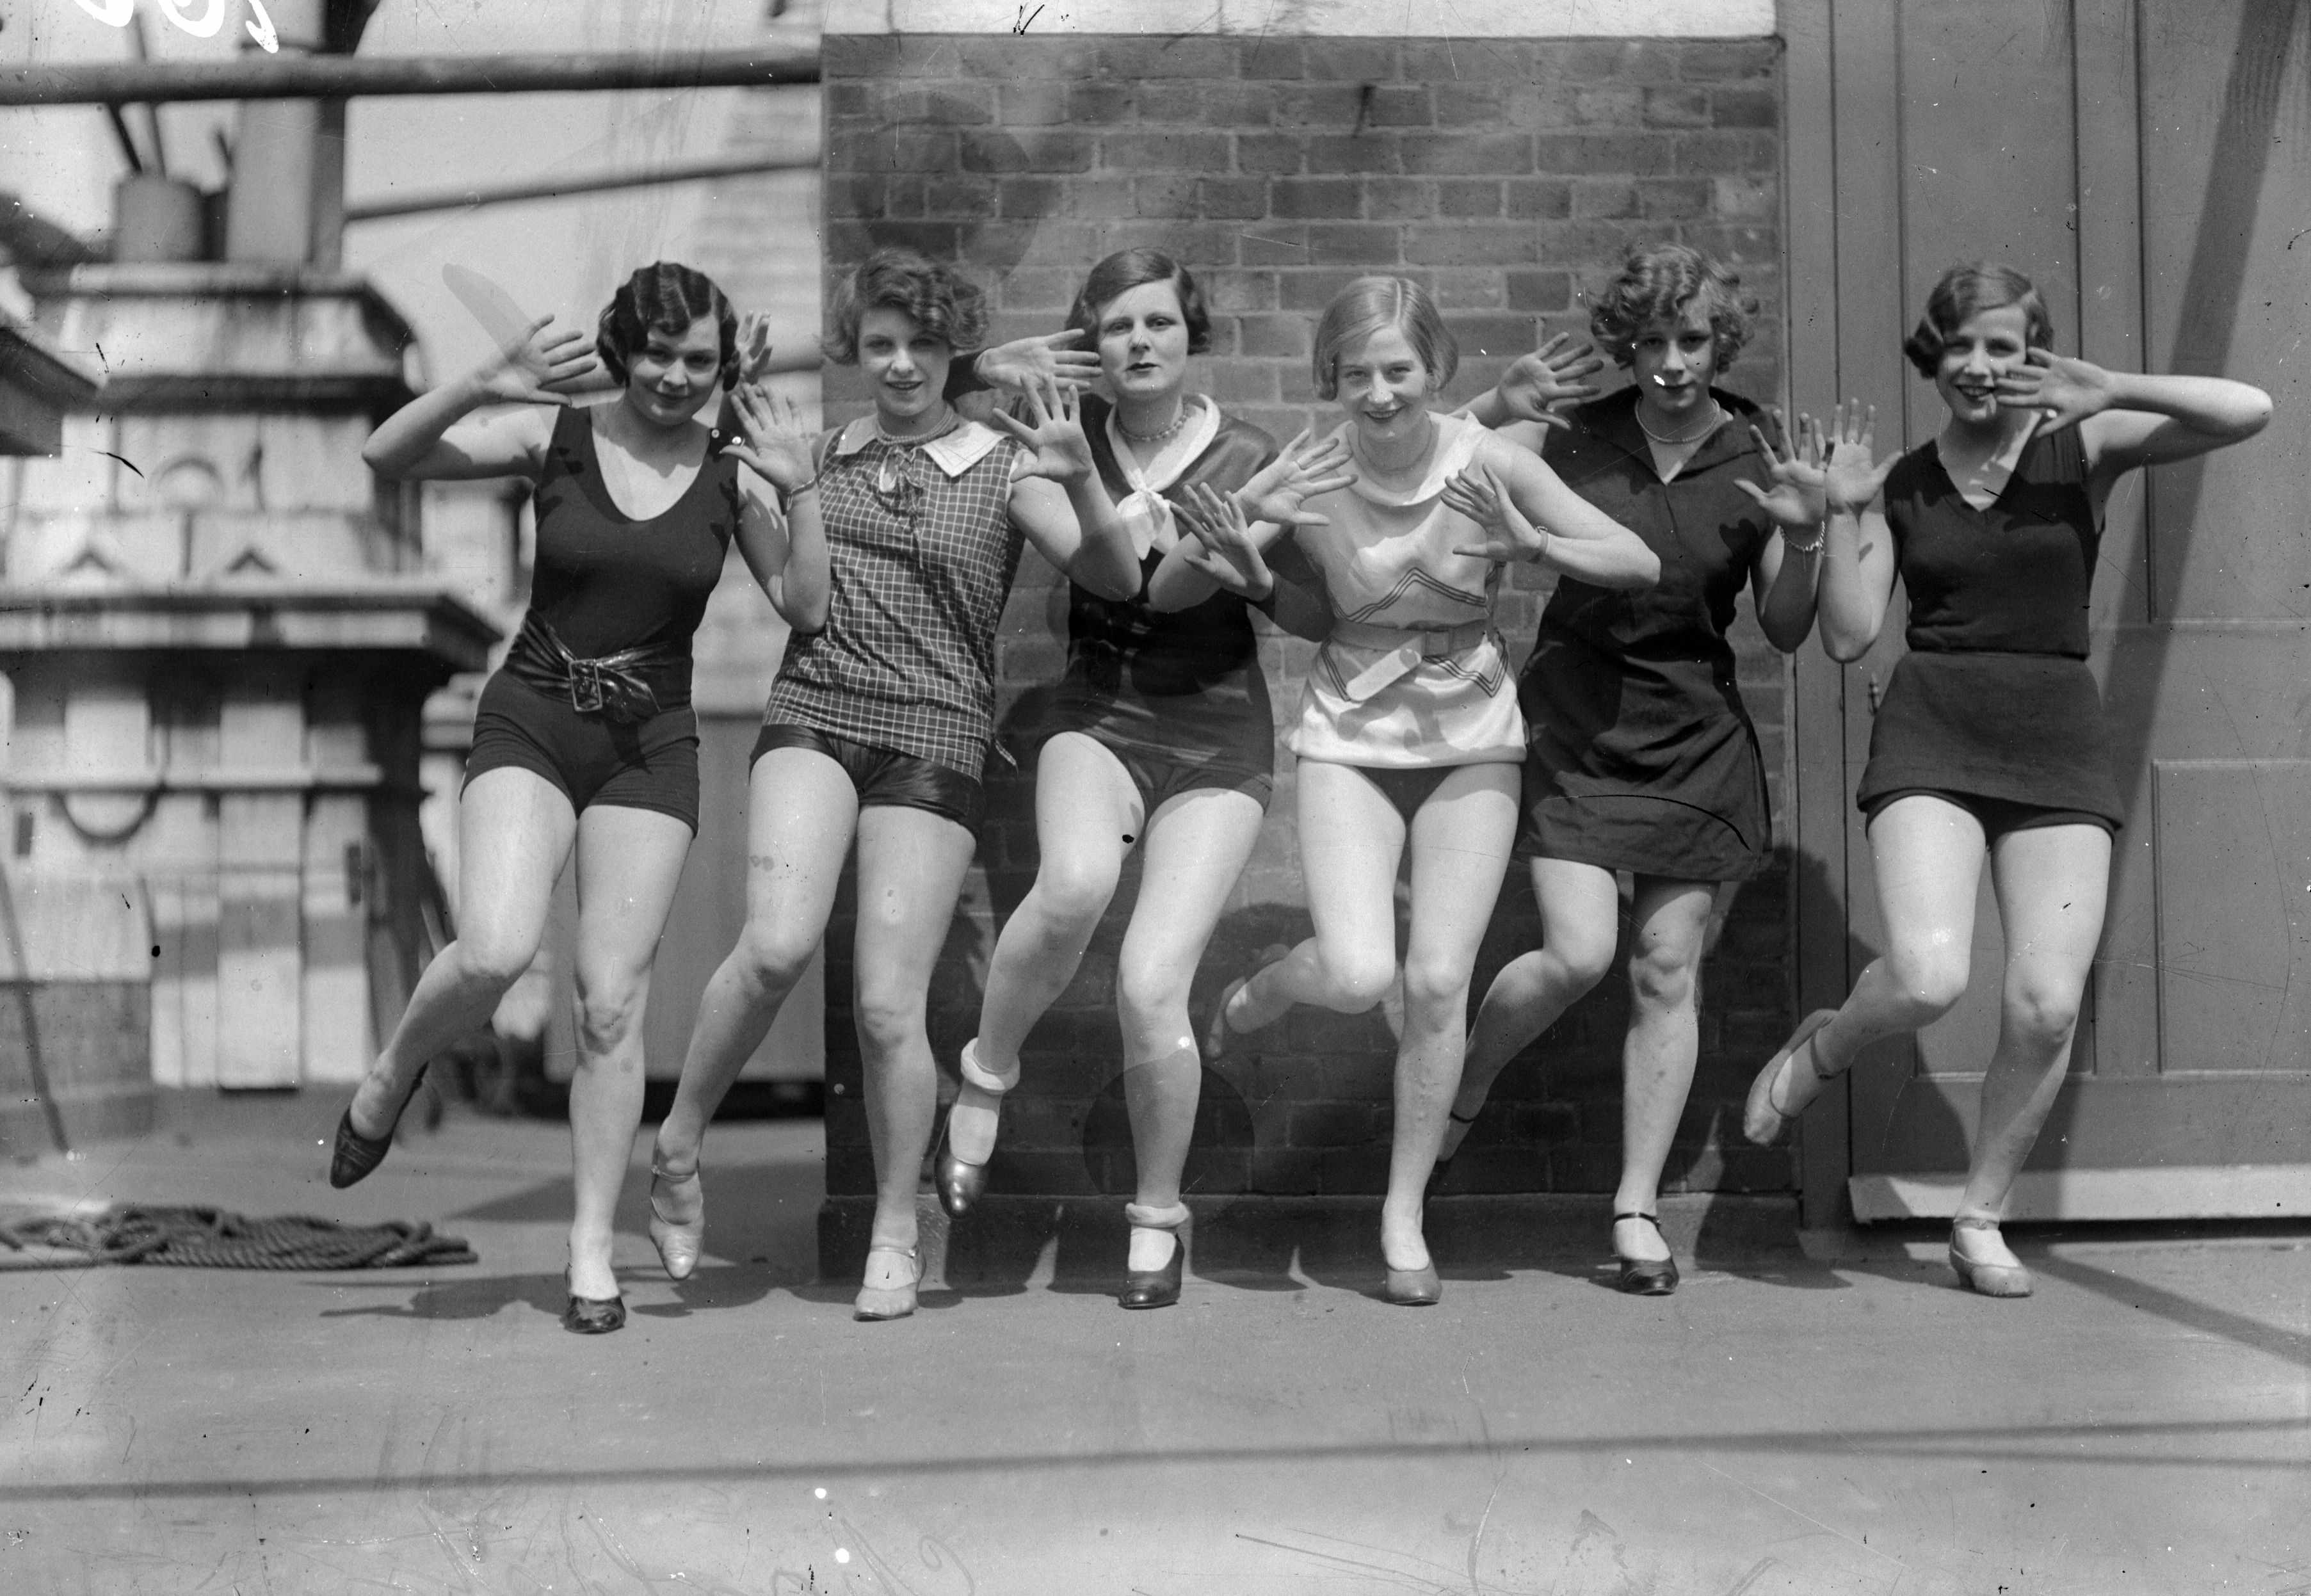 Dancers demonstrate the Charleston, c1926. The dance is often associated with 'flappers' – newly enfranchised women with bobbed hair, short skirts and supposedly looser morals – and characterised by frenetic up and down movements and swivelling, akimbo limbs. (Photo by General Photographic Agency/Getty Images)